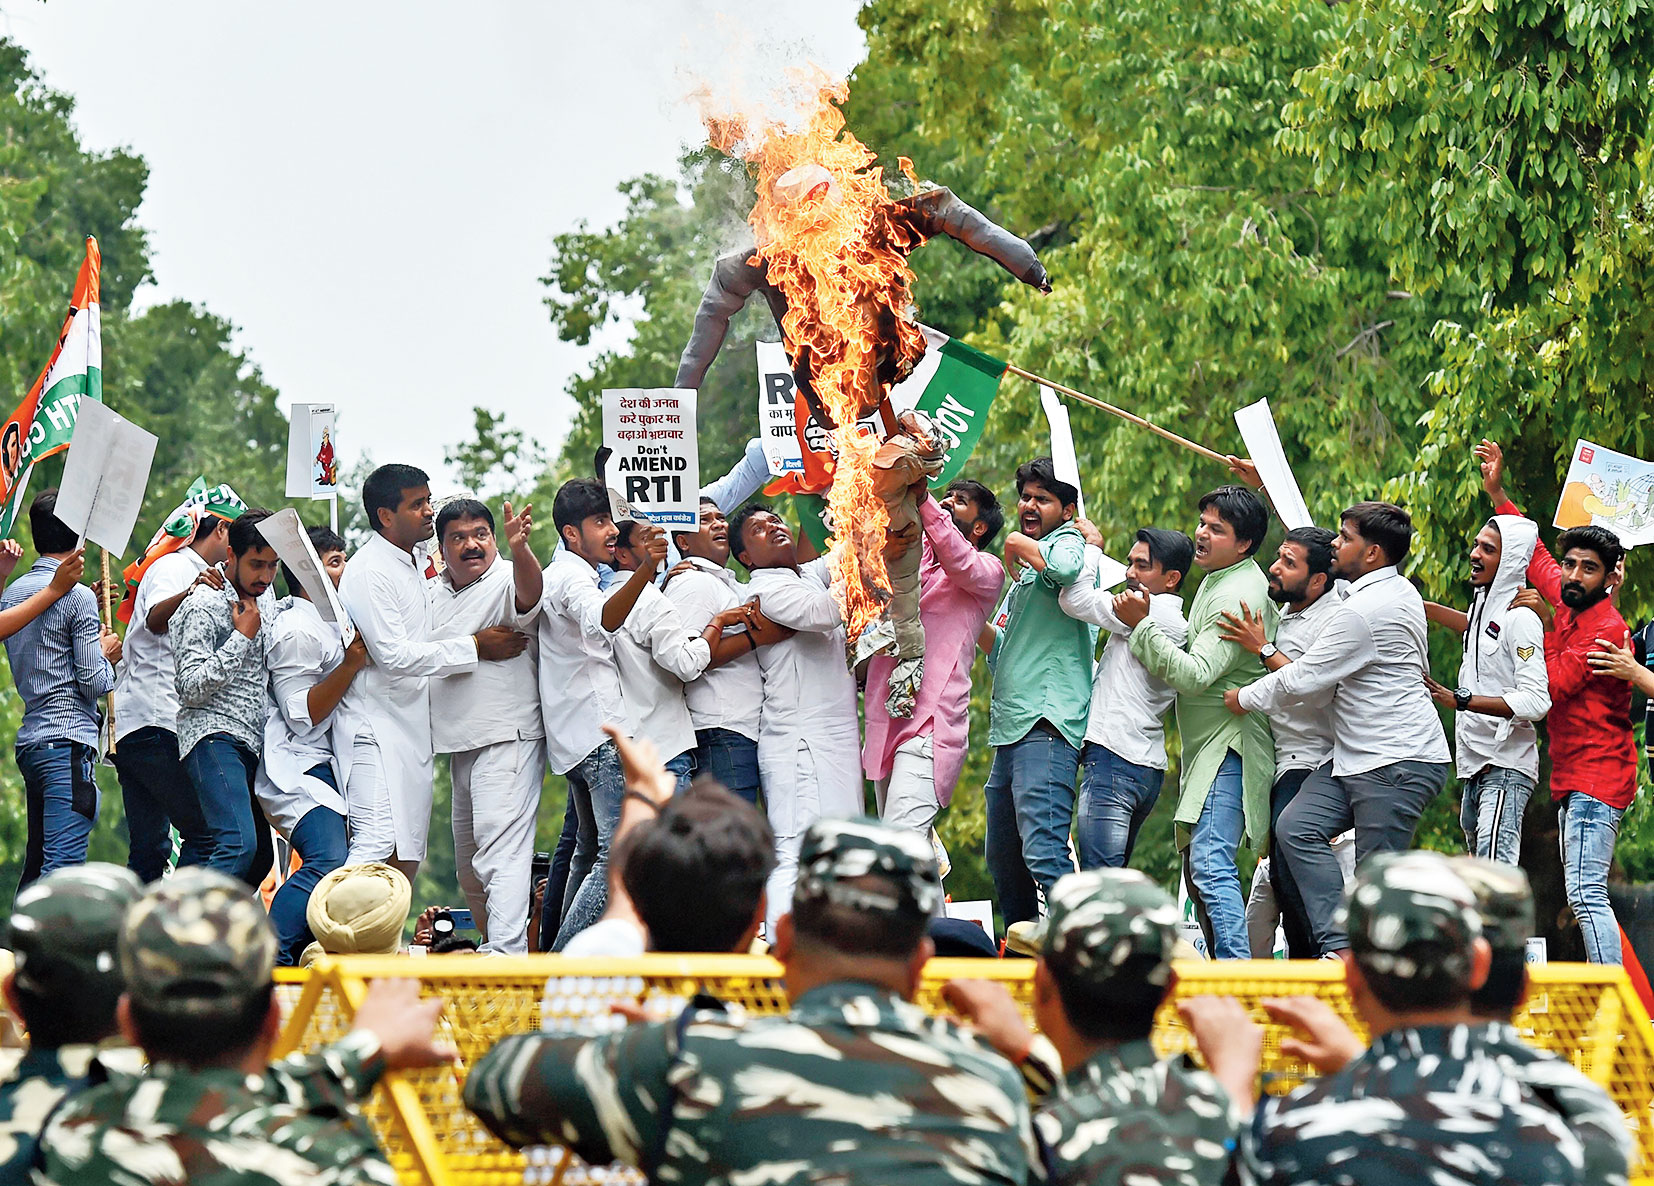 Members of Delhi Pradesh Youth Congress stage a protest against RTI Amendment Bill in New Delhi on Friday.